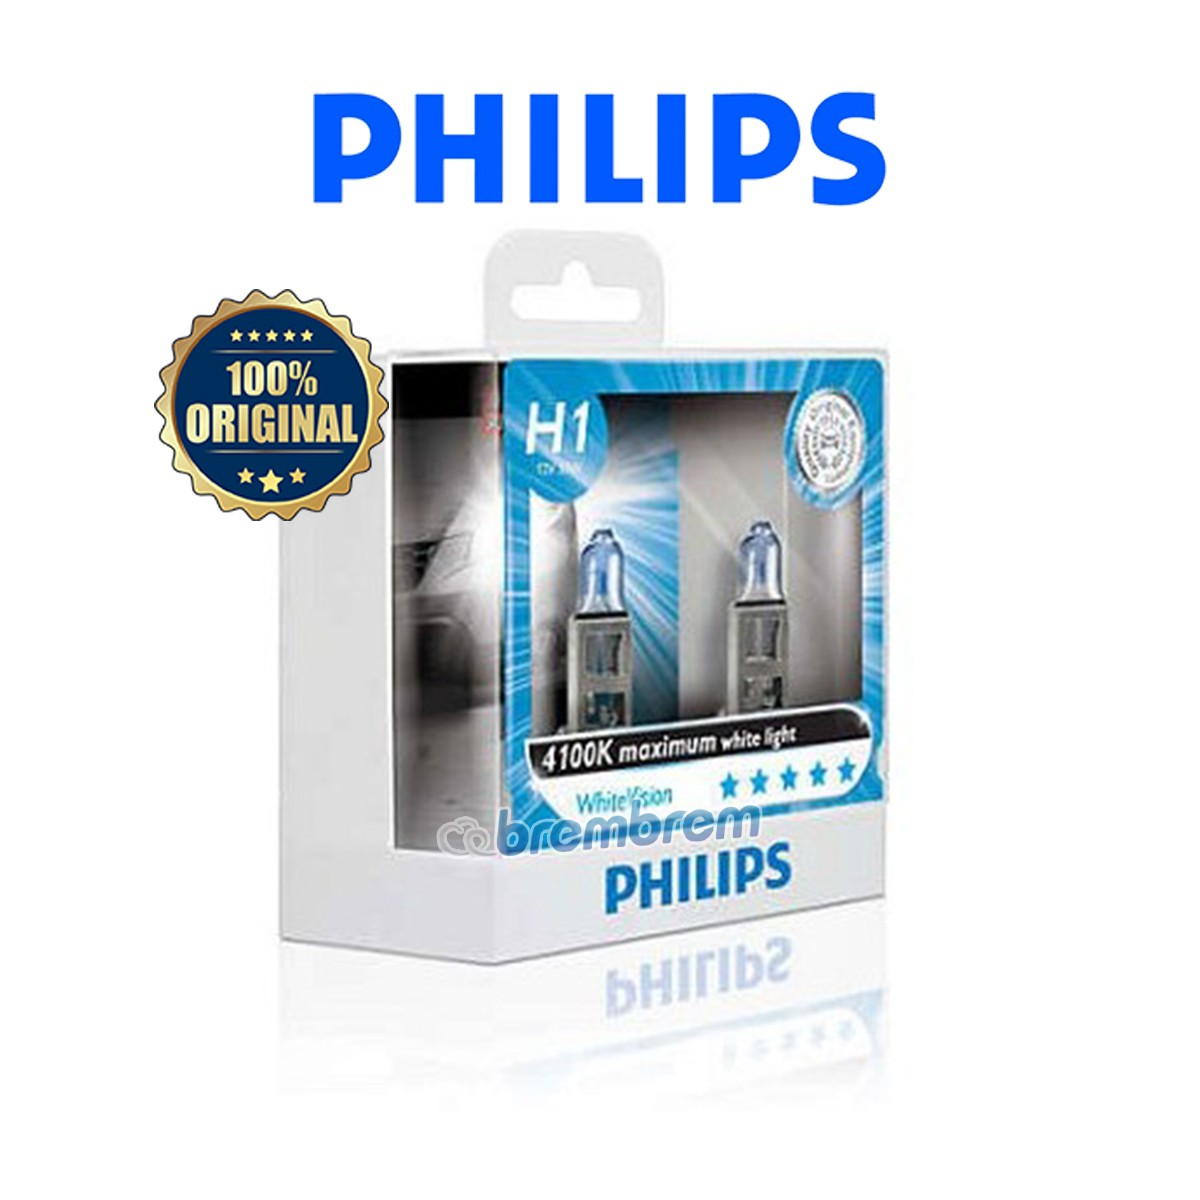 PHILIPS WHITE VISION H1 (4100K) - LAMPU HALOGEN